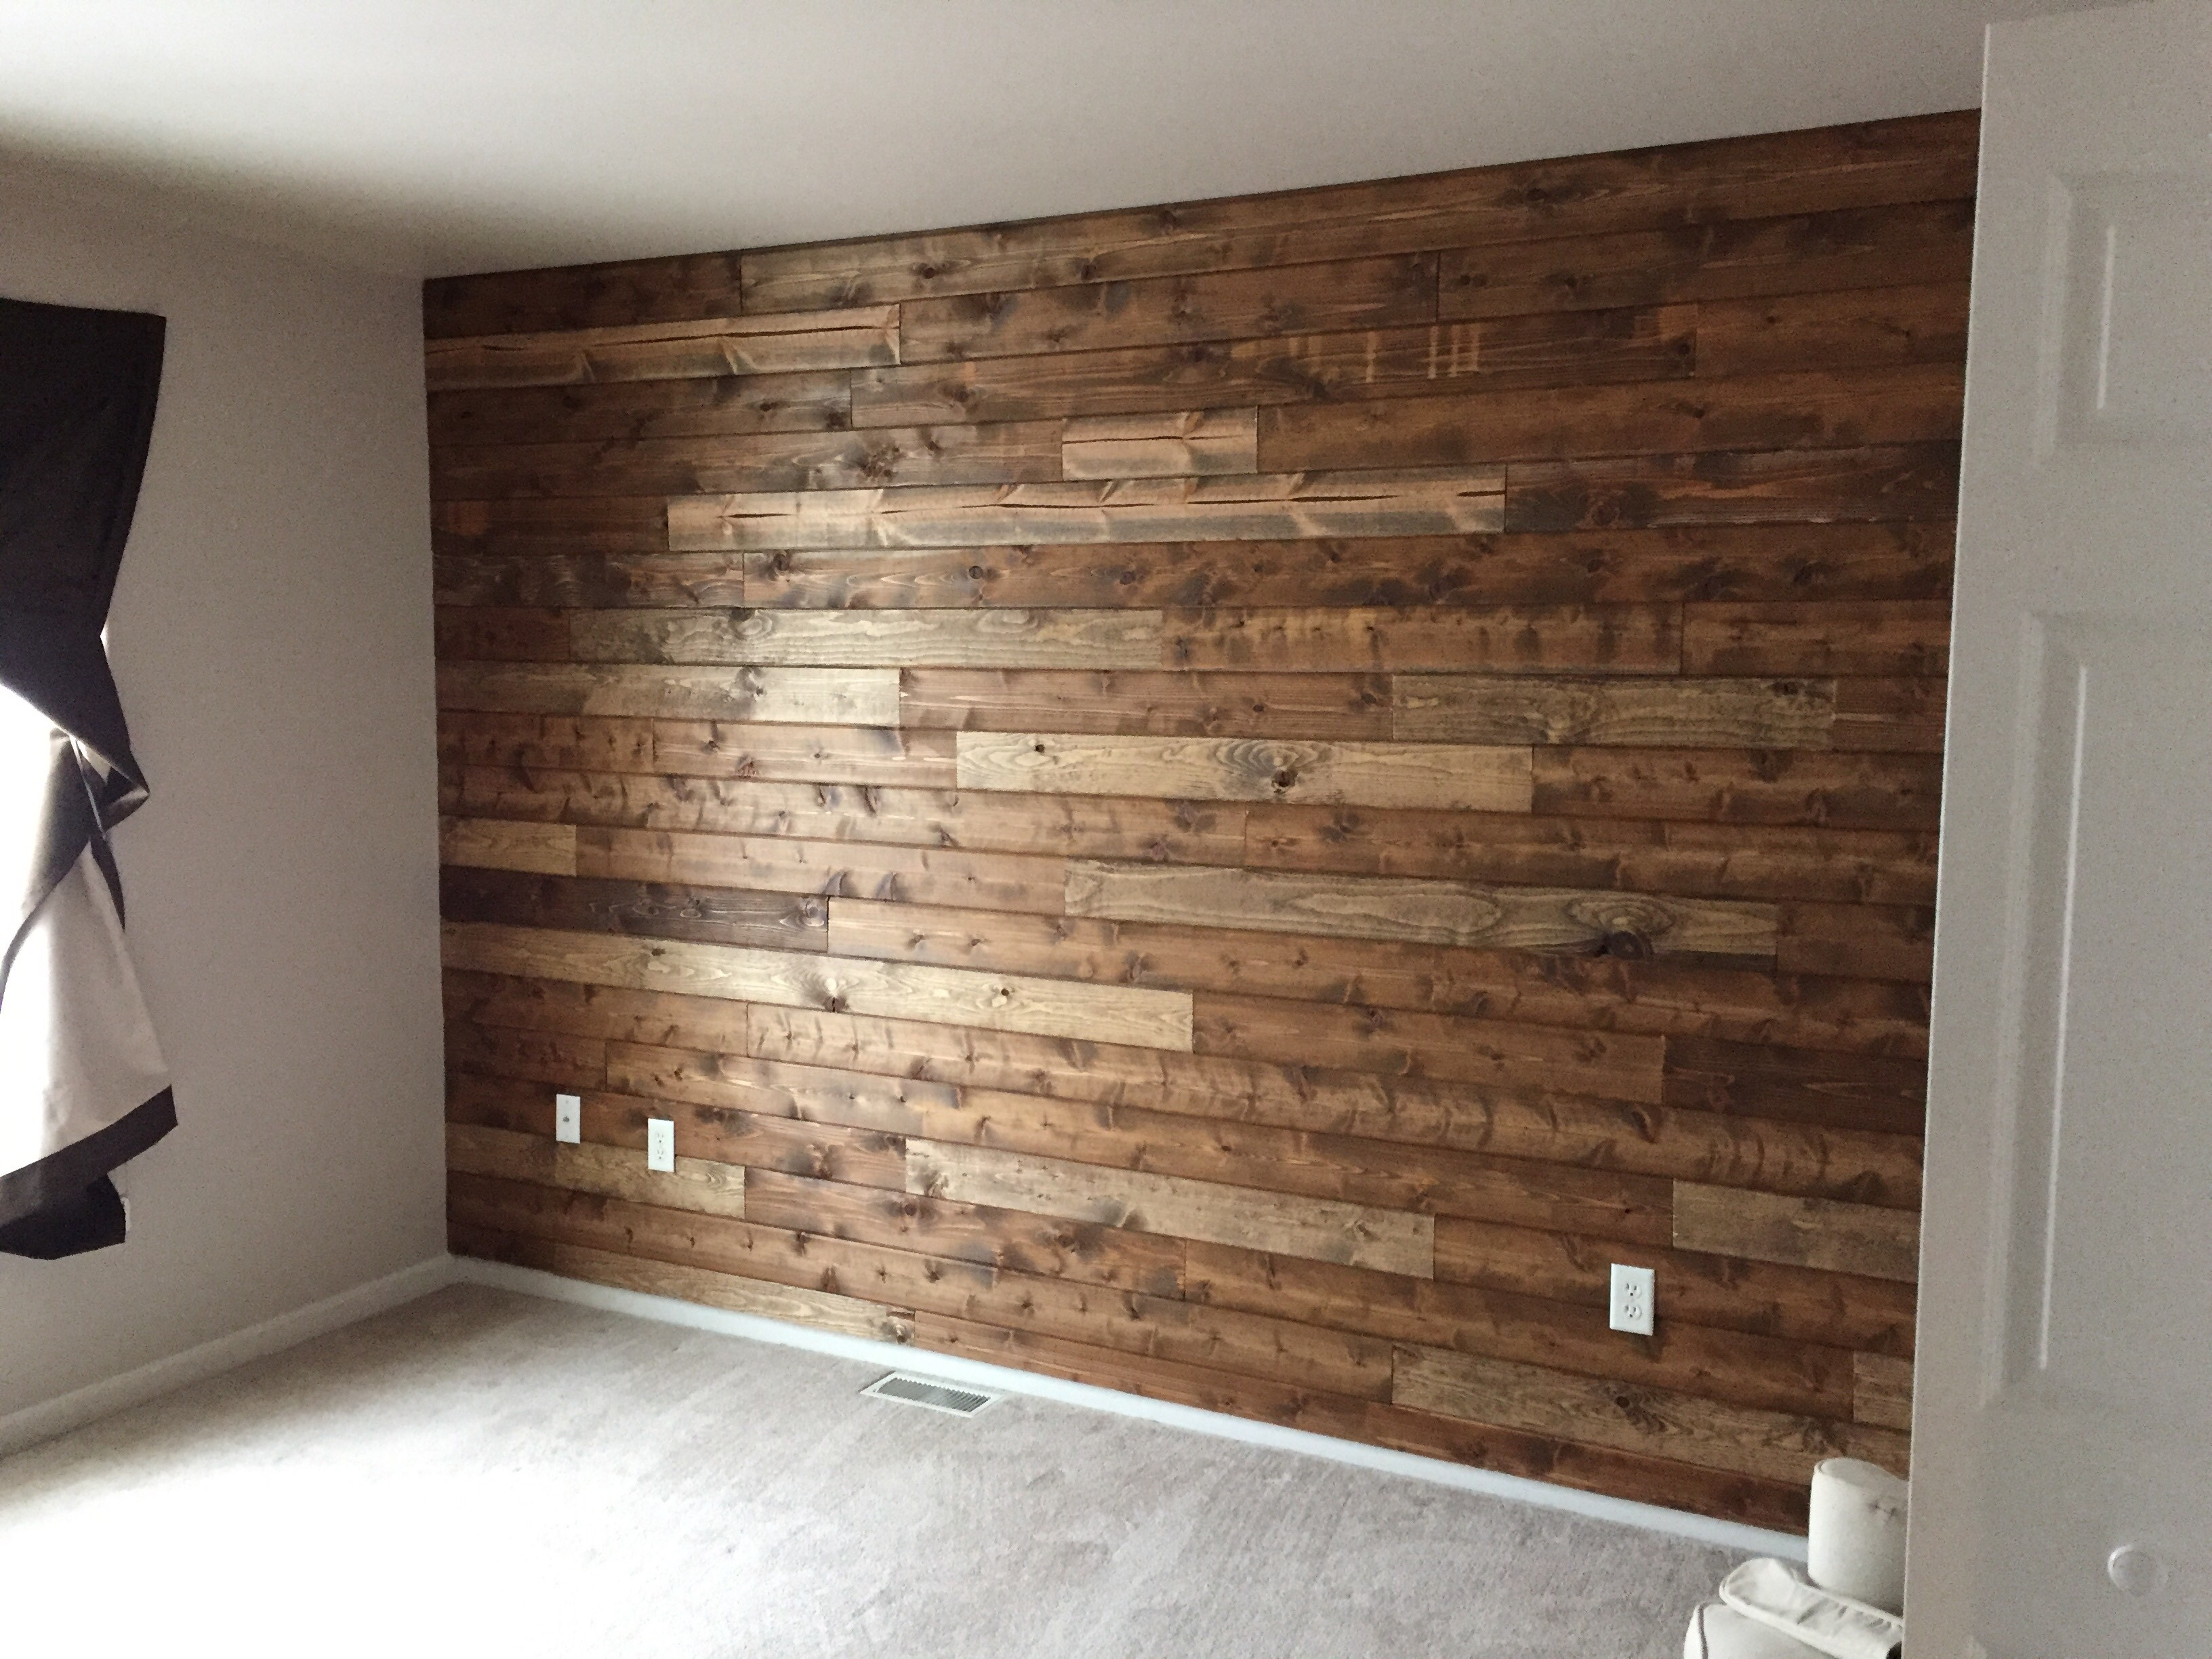 Wooden Accent Wall Tutorial Wood Accent Wall In Bathroom Accent regarding Latest Wood Wall Accents